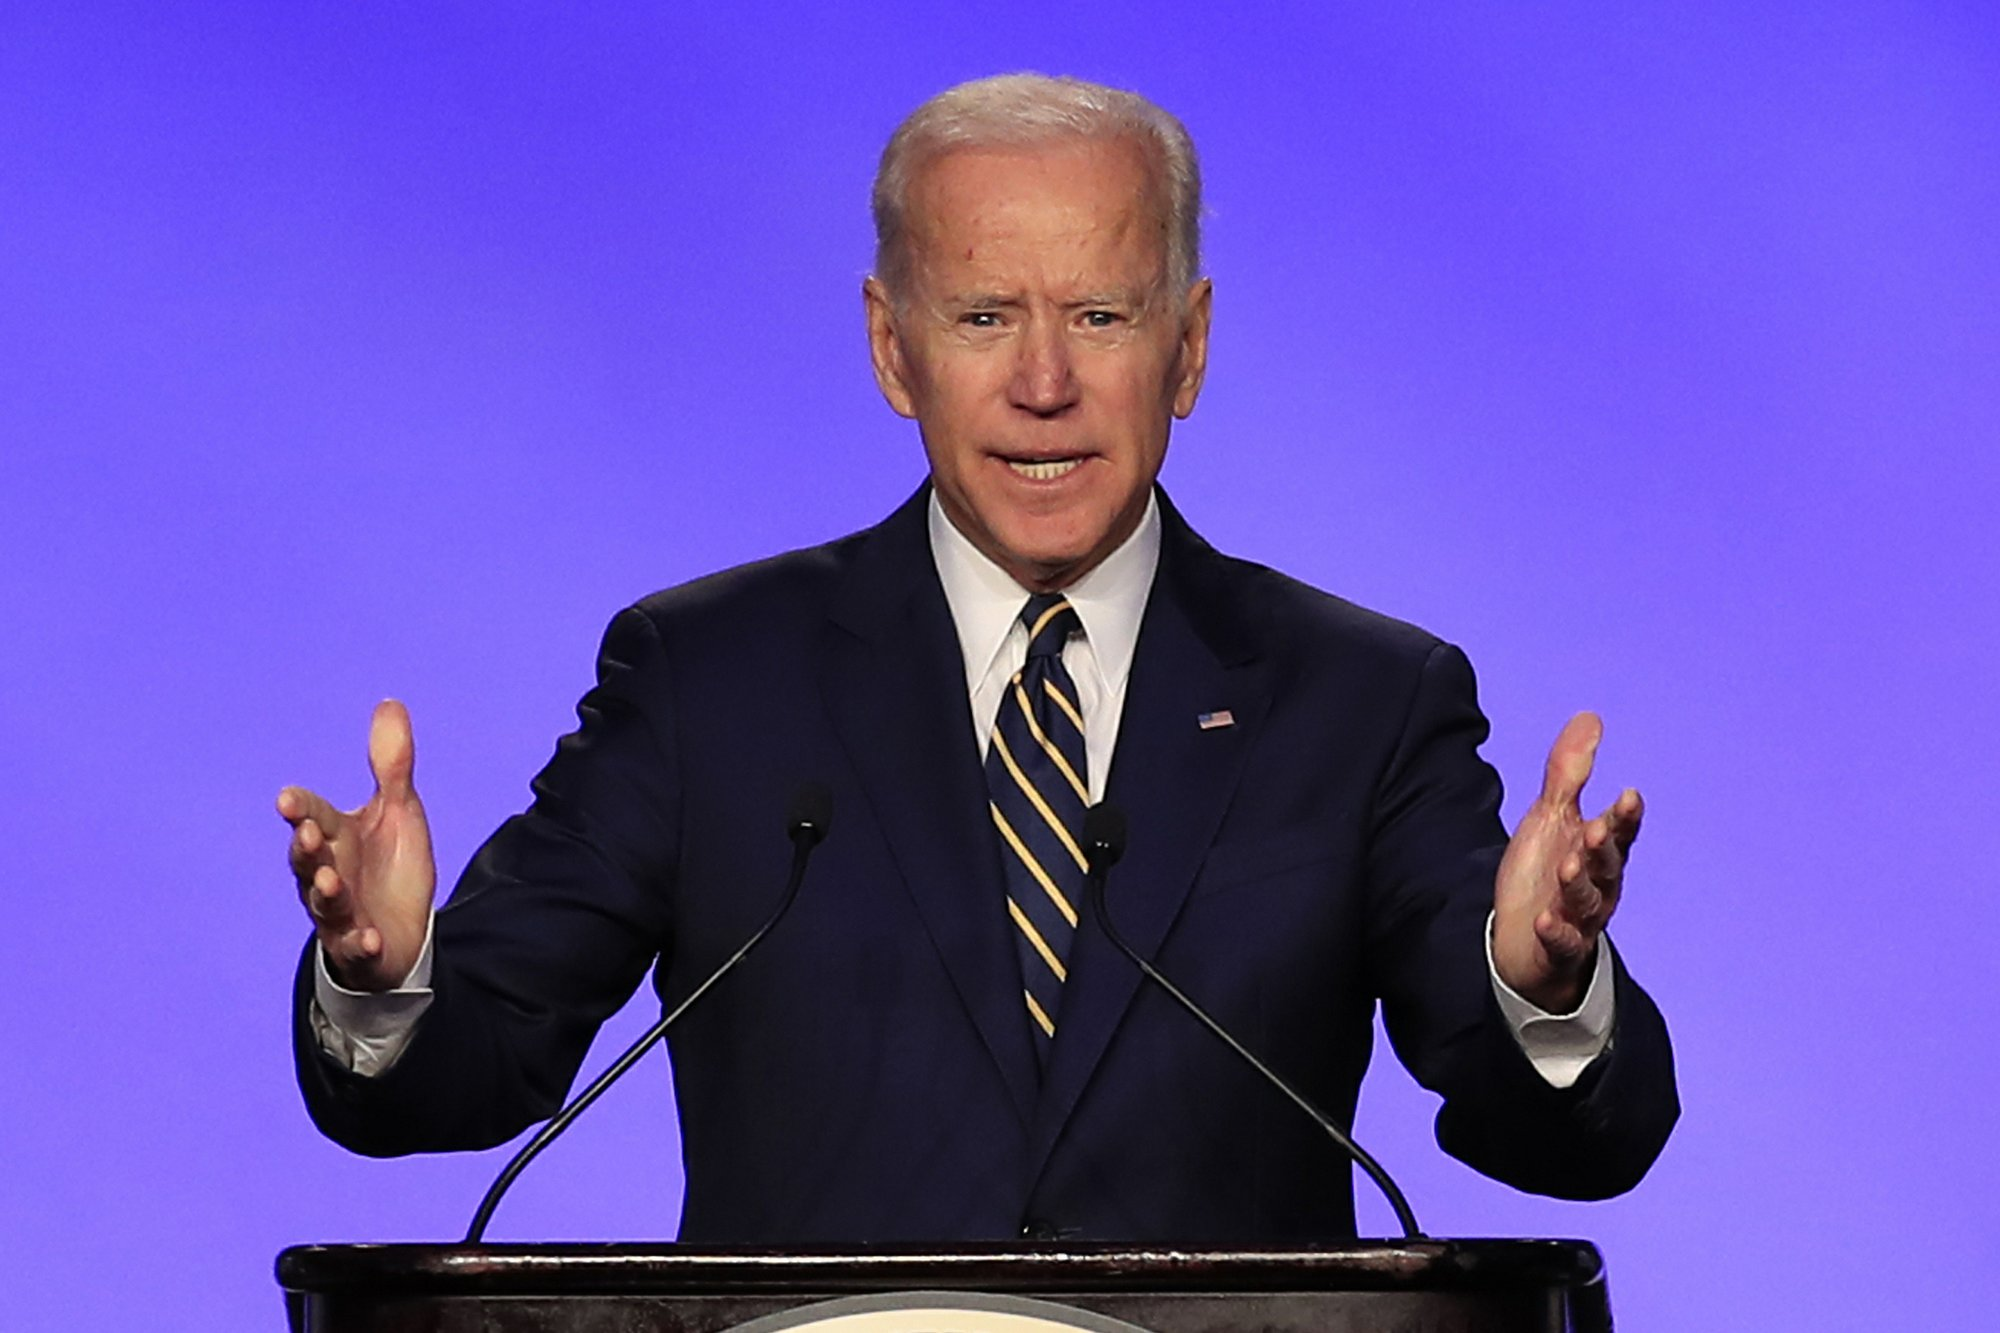 americans-wont-stand-for-election-results-not-being-honored-biden